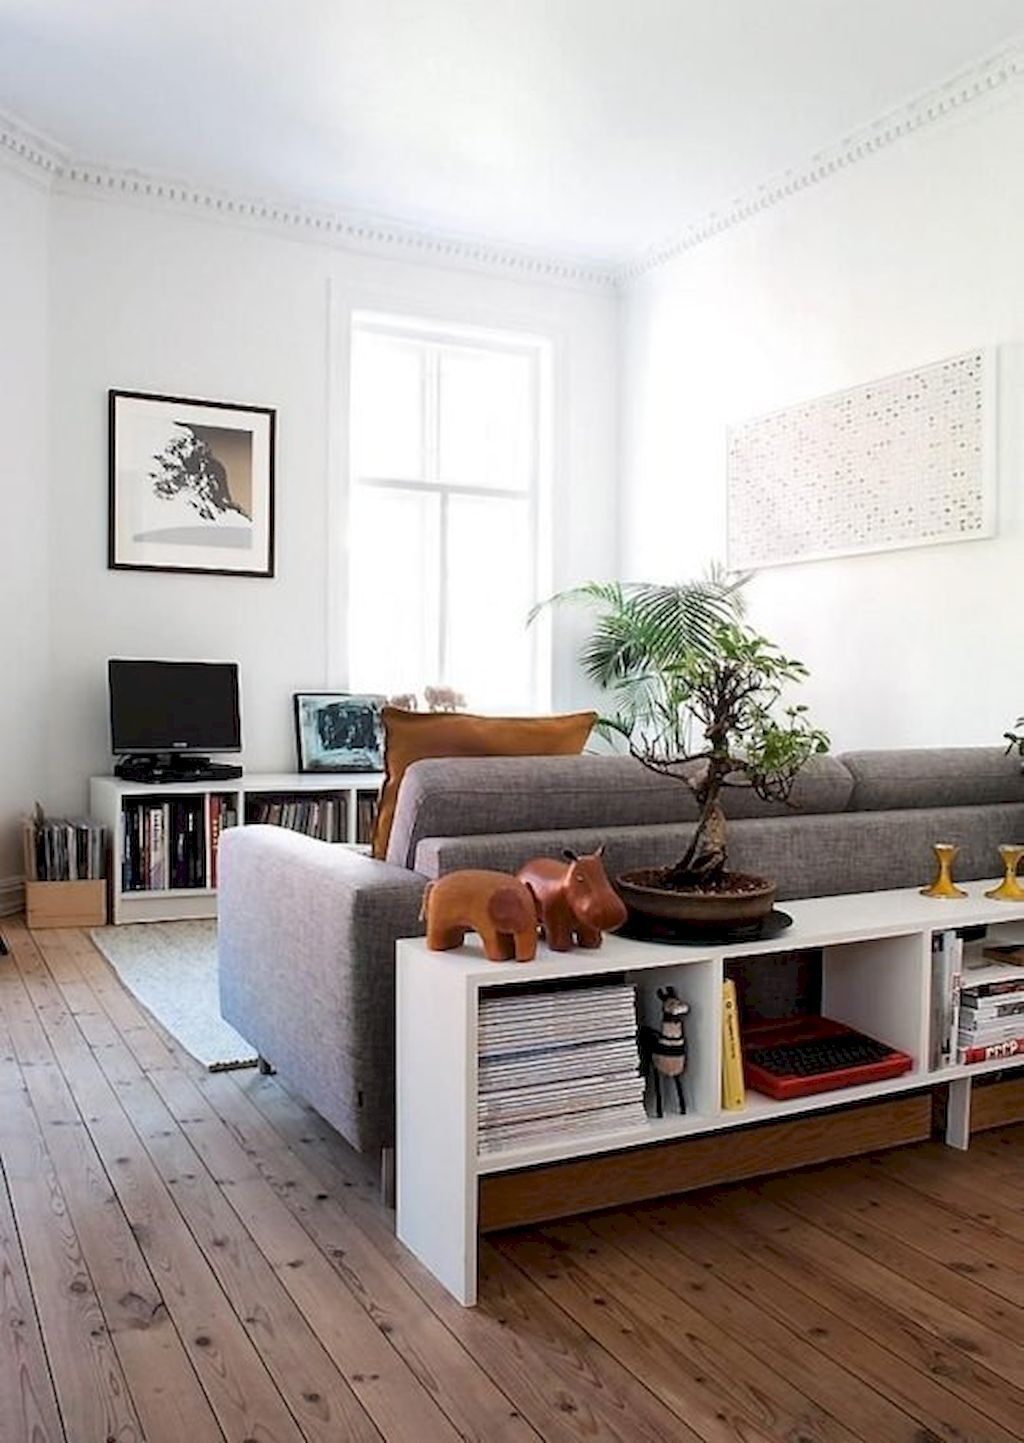 Space Saving Living Room Decoration Ideas For Small Apartment 11 ...